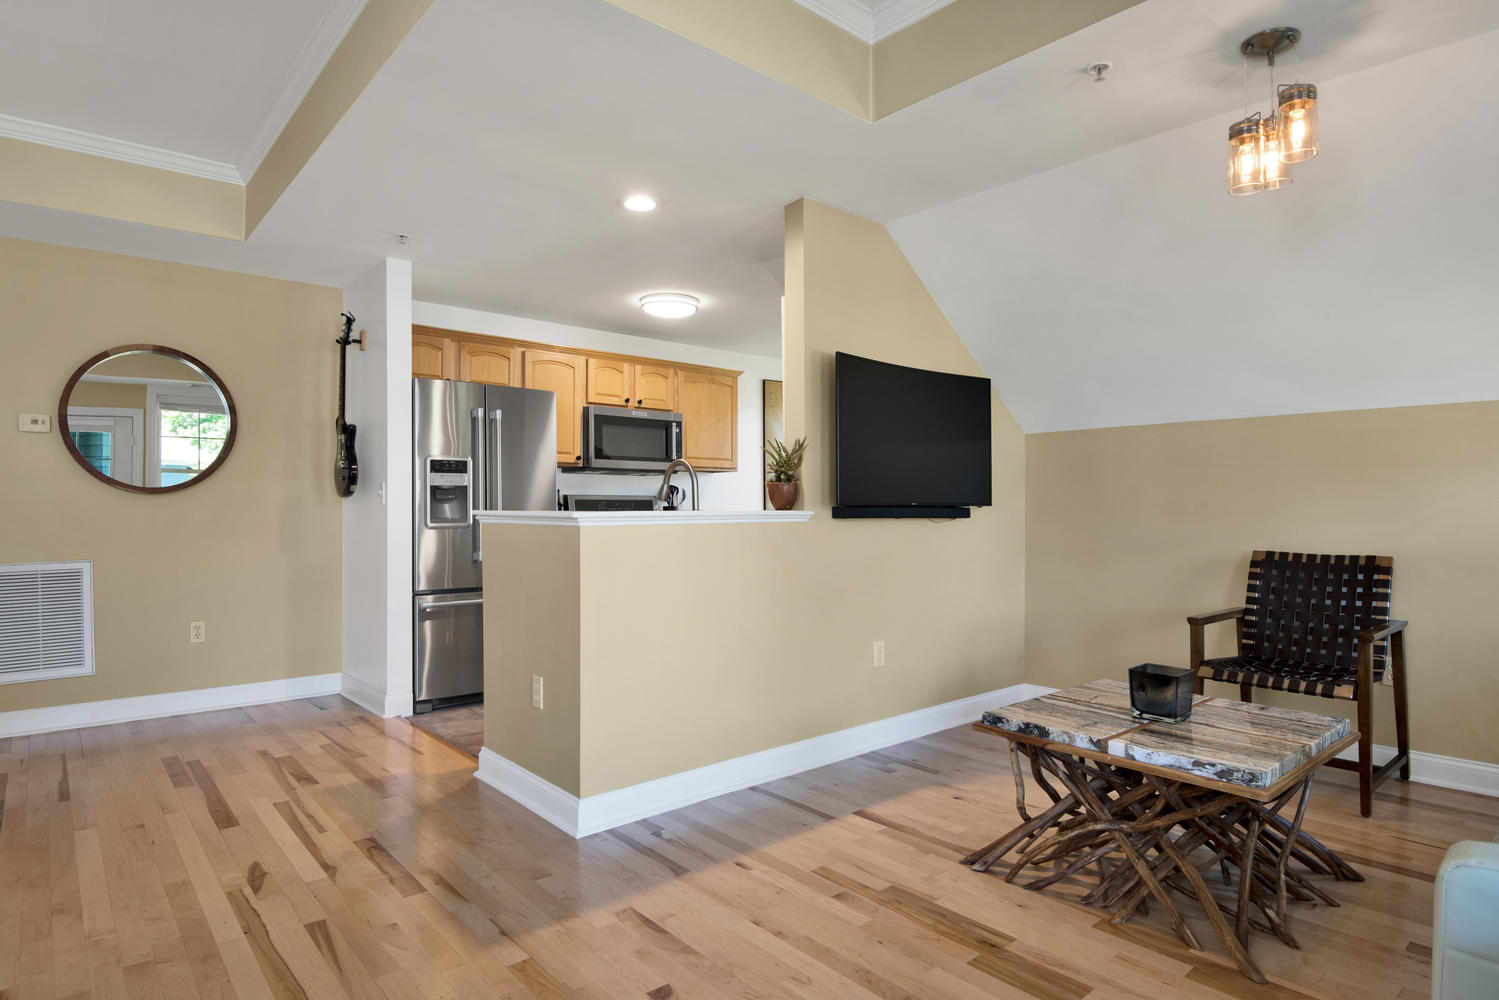 7 Camperdown Elm Dr-large-011-4-KitchenLiving Room-1499x1000-72dpi.jpg